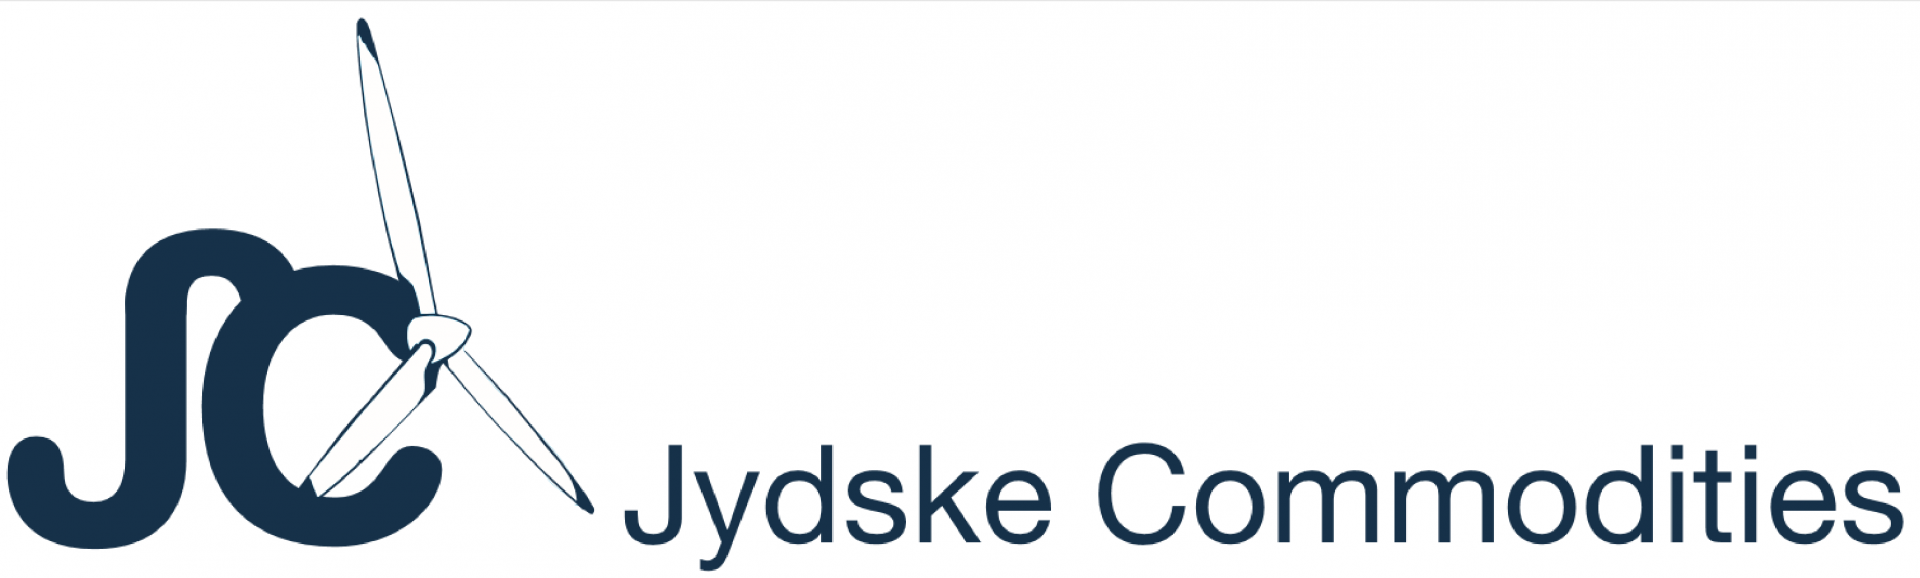 Jydske Commodities